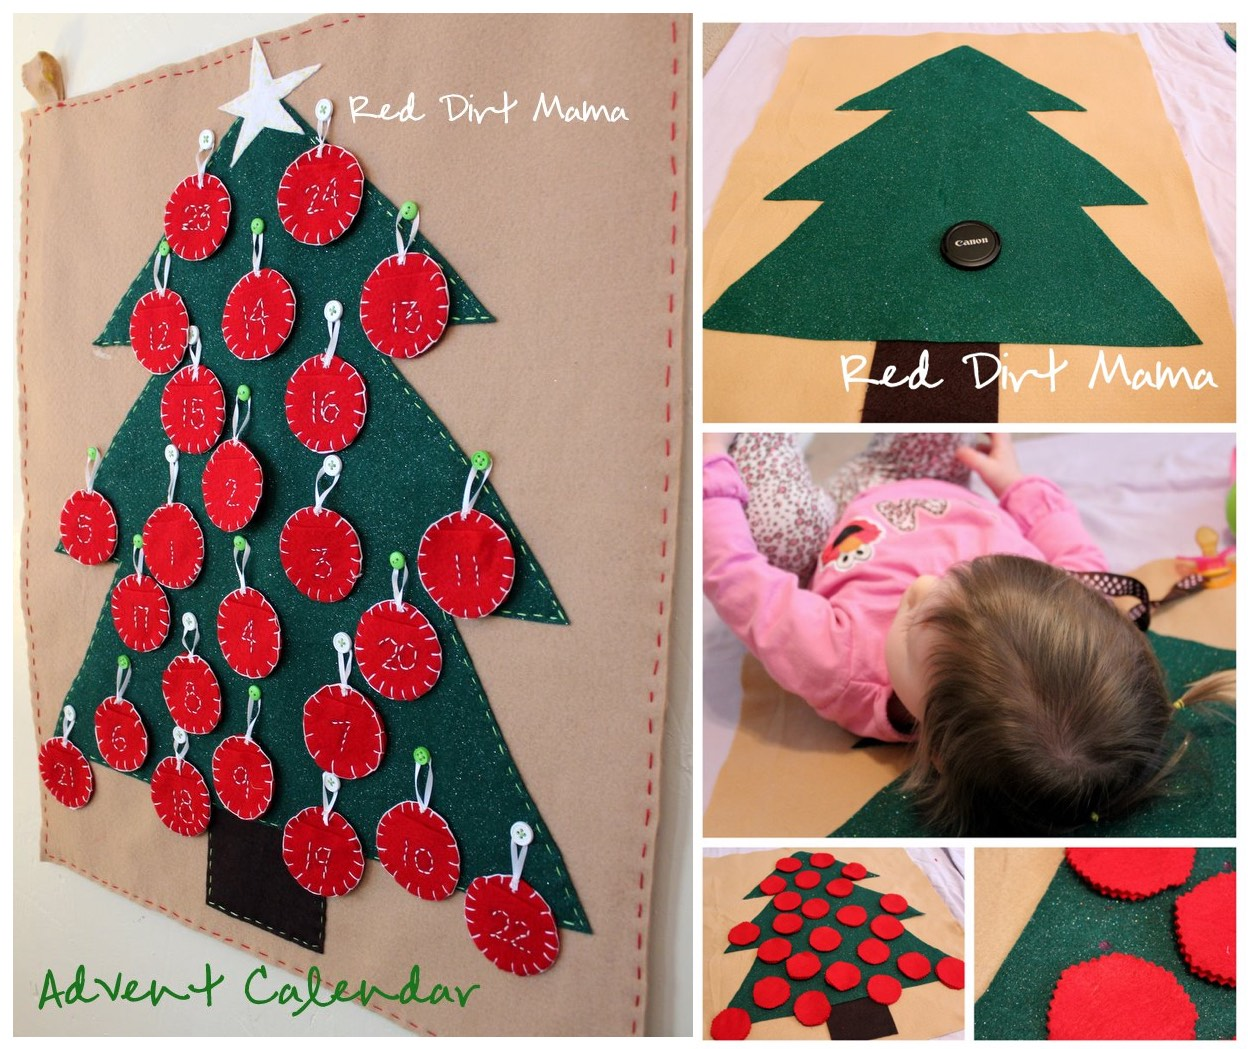 Advent Calendar Diy Ideas : Top ideas for the best diy advent calendar kids